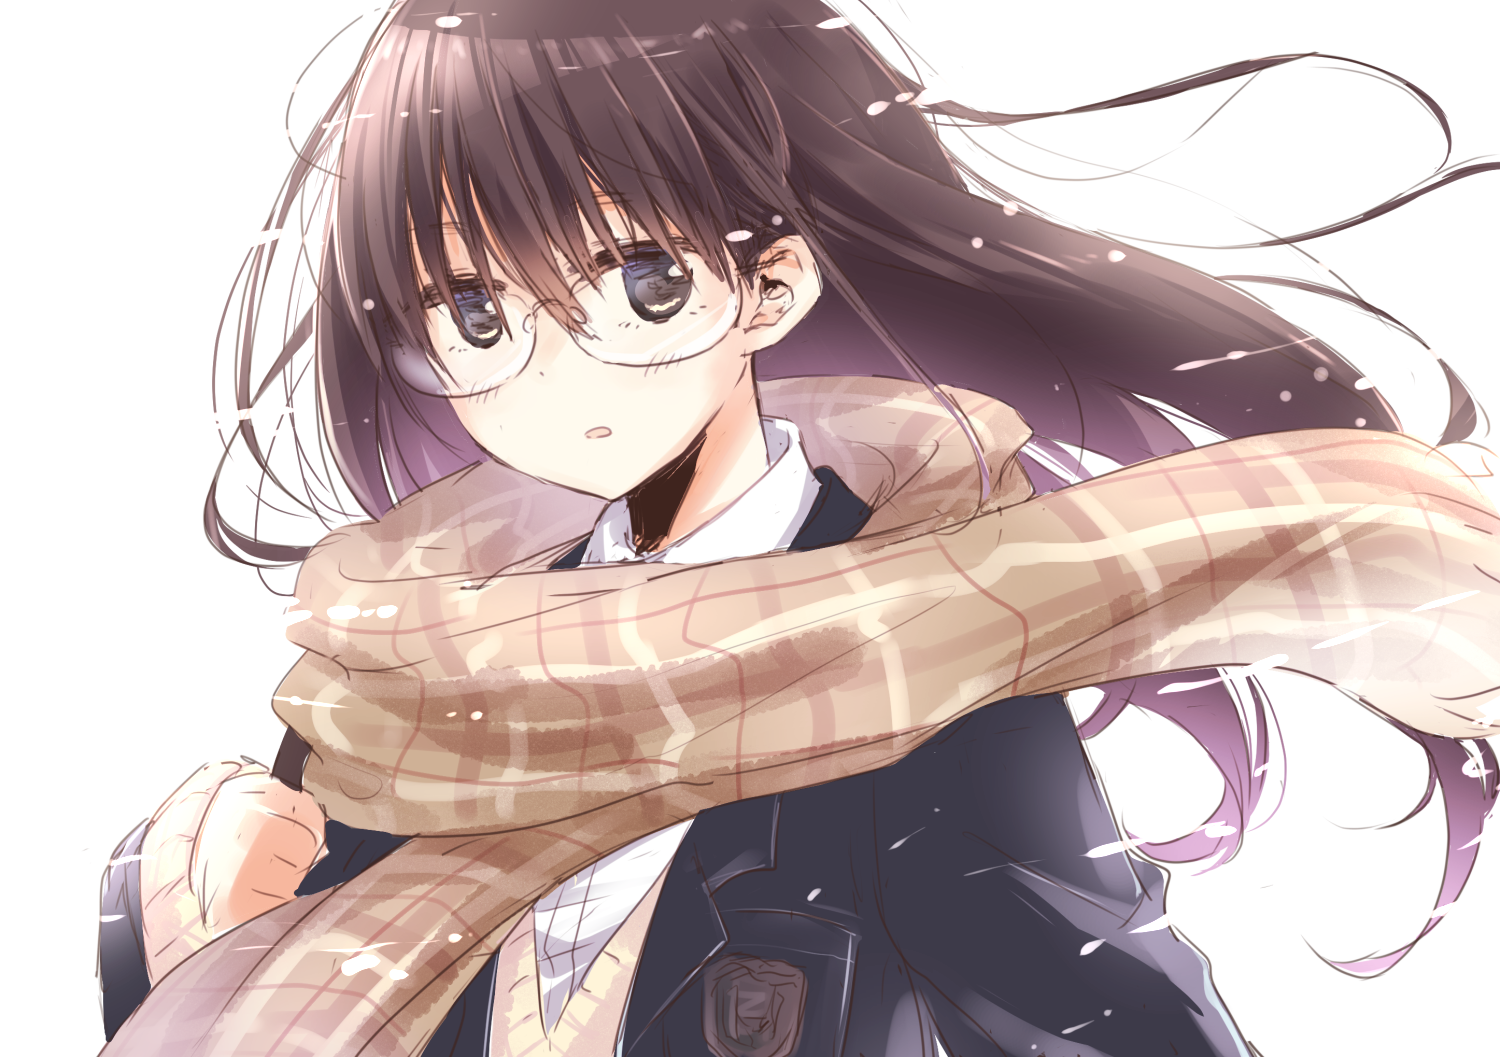 Brown Haired Anime Girl With Bangs And Glasses